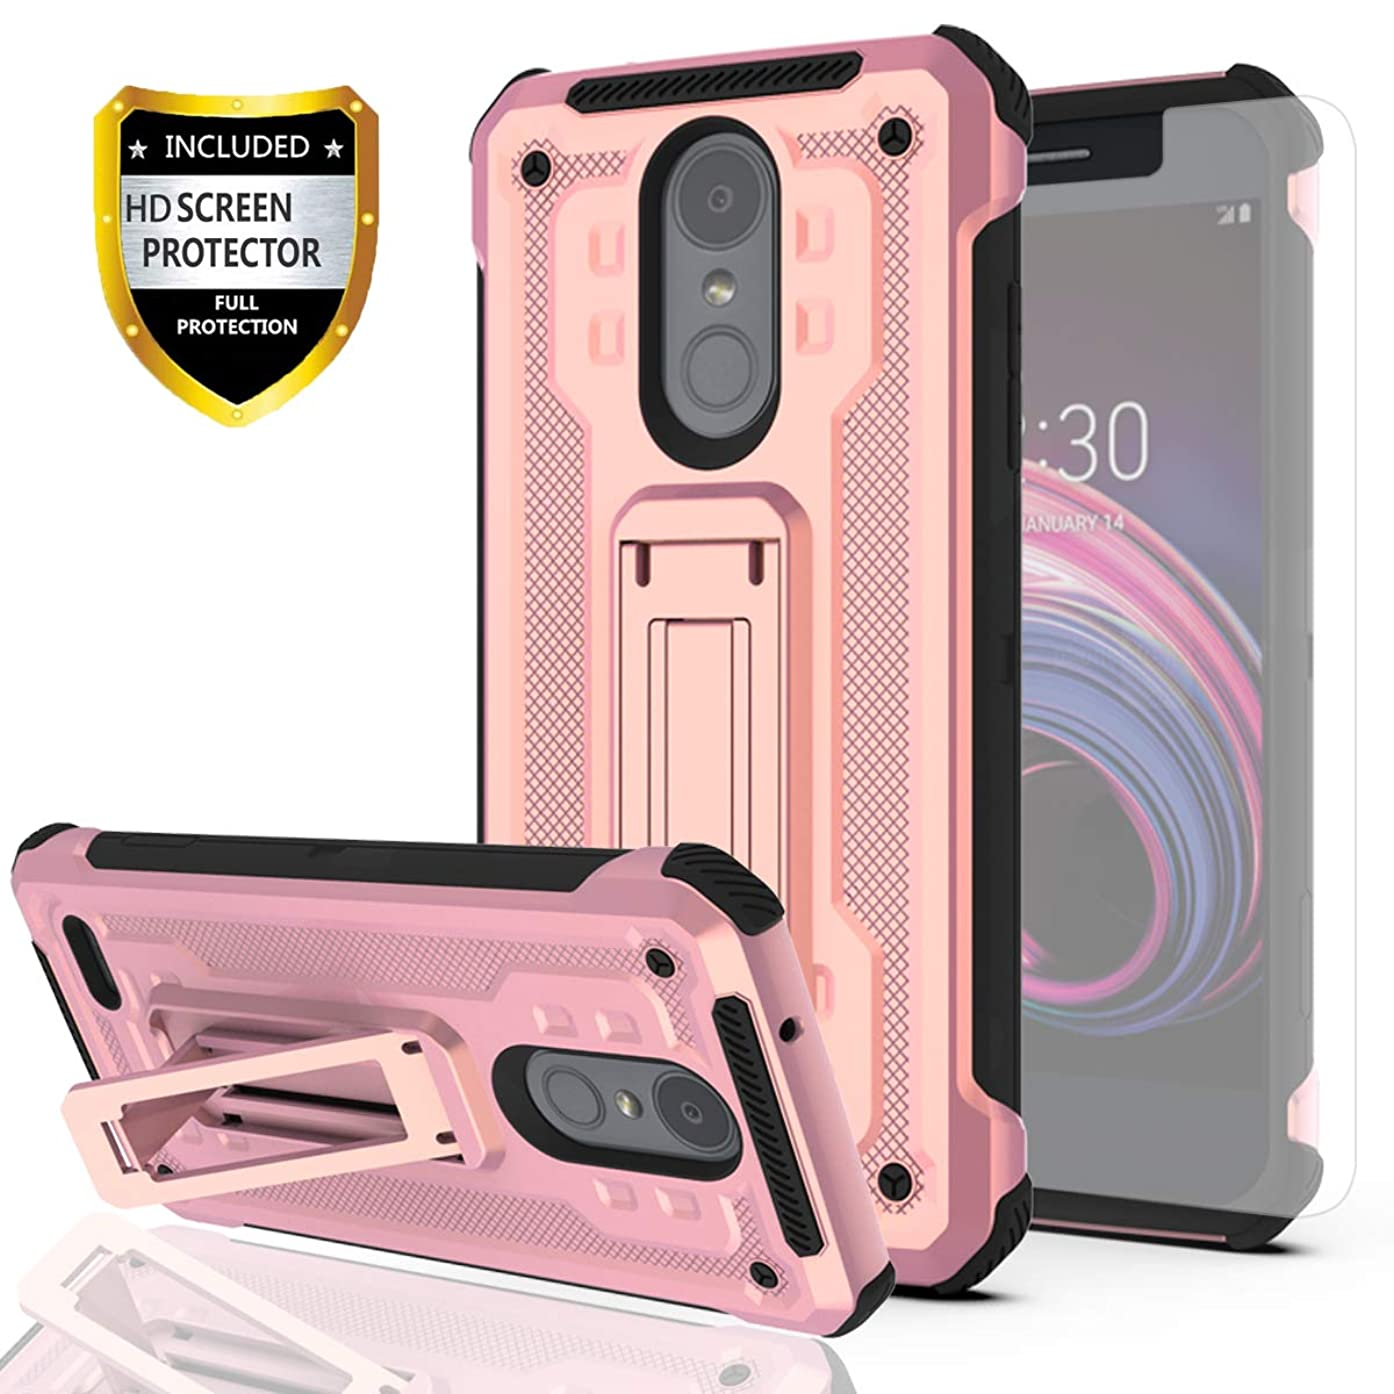 LG Aristo 2 Case, LG Aristo 3/Aristo 2 Plus/Fortune 2/Risio 3/Zone 4 Case with HD Screen Protector,YmhxcY Cellphone Holder 2in1 Scratch Resistant Drop Protective for LG X210-JW Rose Gold